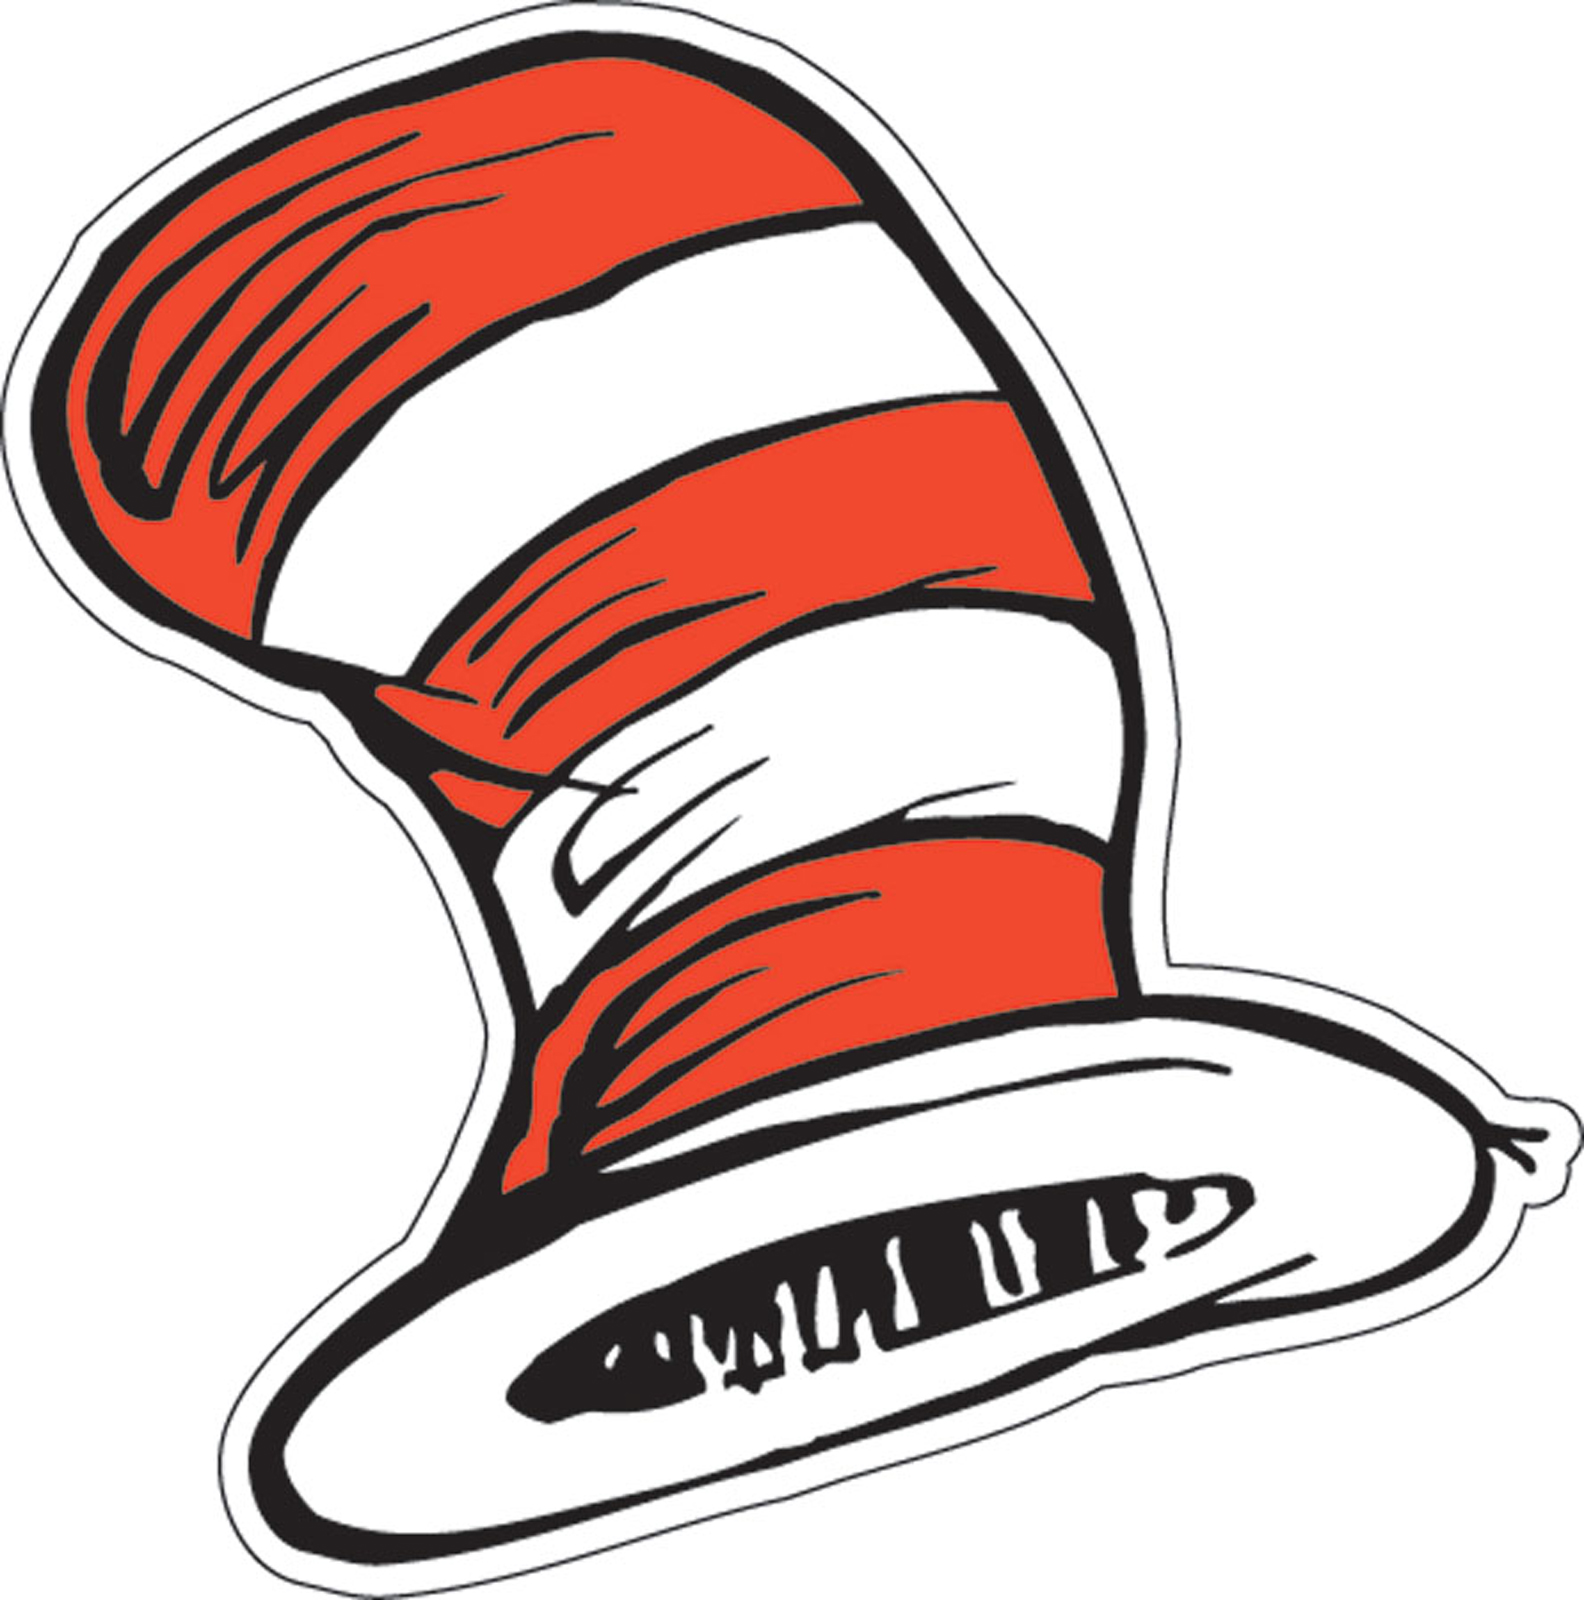 Dr seuss clipart cat in hat. The s panda free